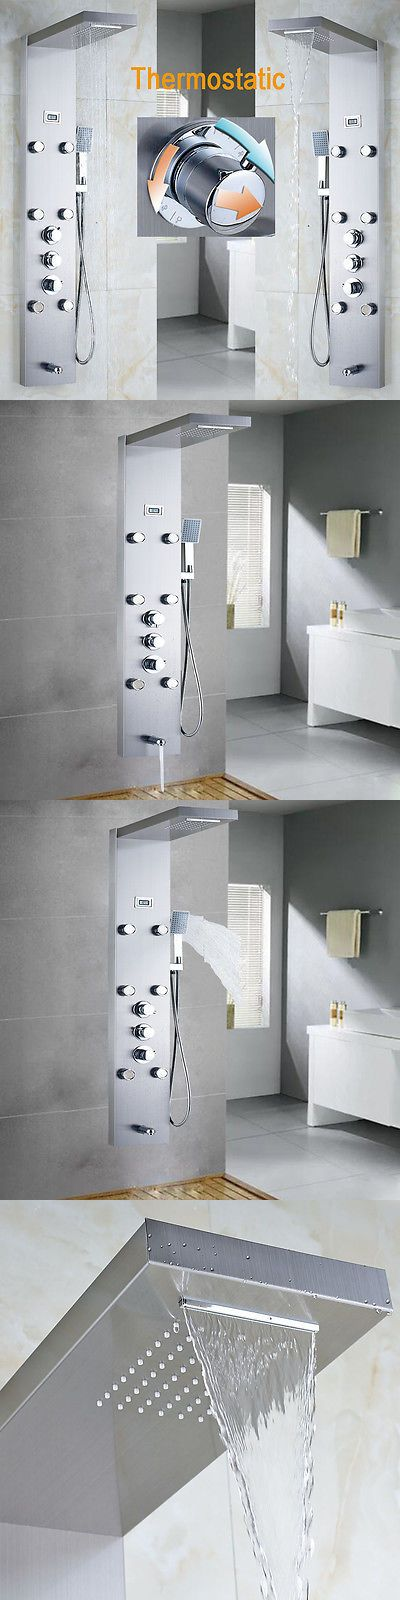 Shower Panels and Massagers 121849: Thermostatic Brushed Nickel Shower Tower Panel Massage Systerm With Body Jets -> BUY IT NOW ONLY: $149 on eBay!